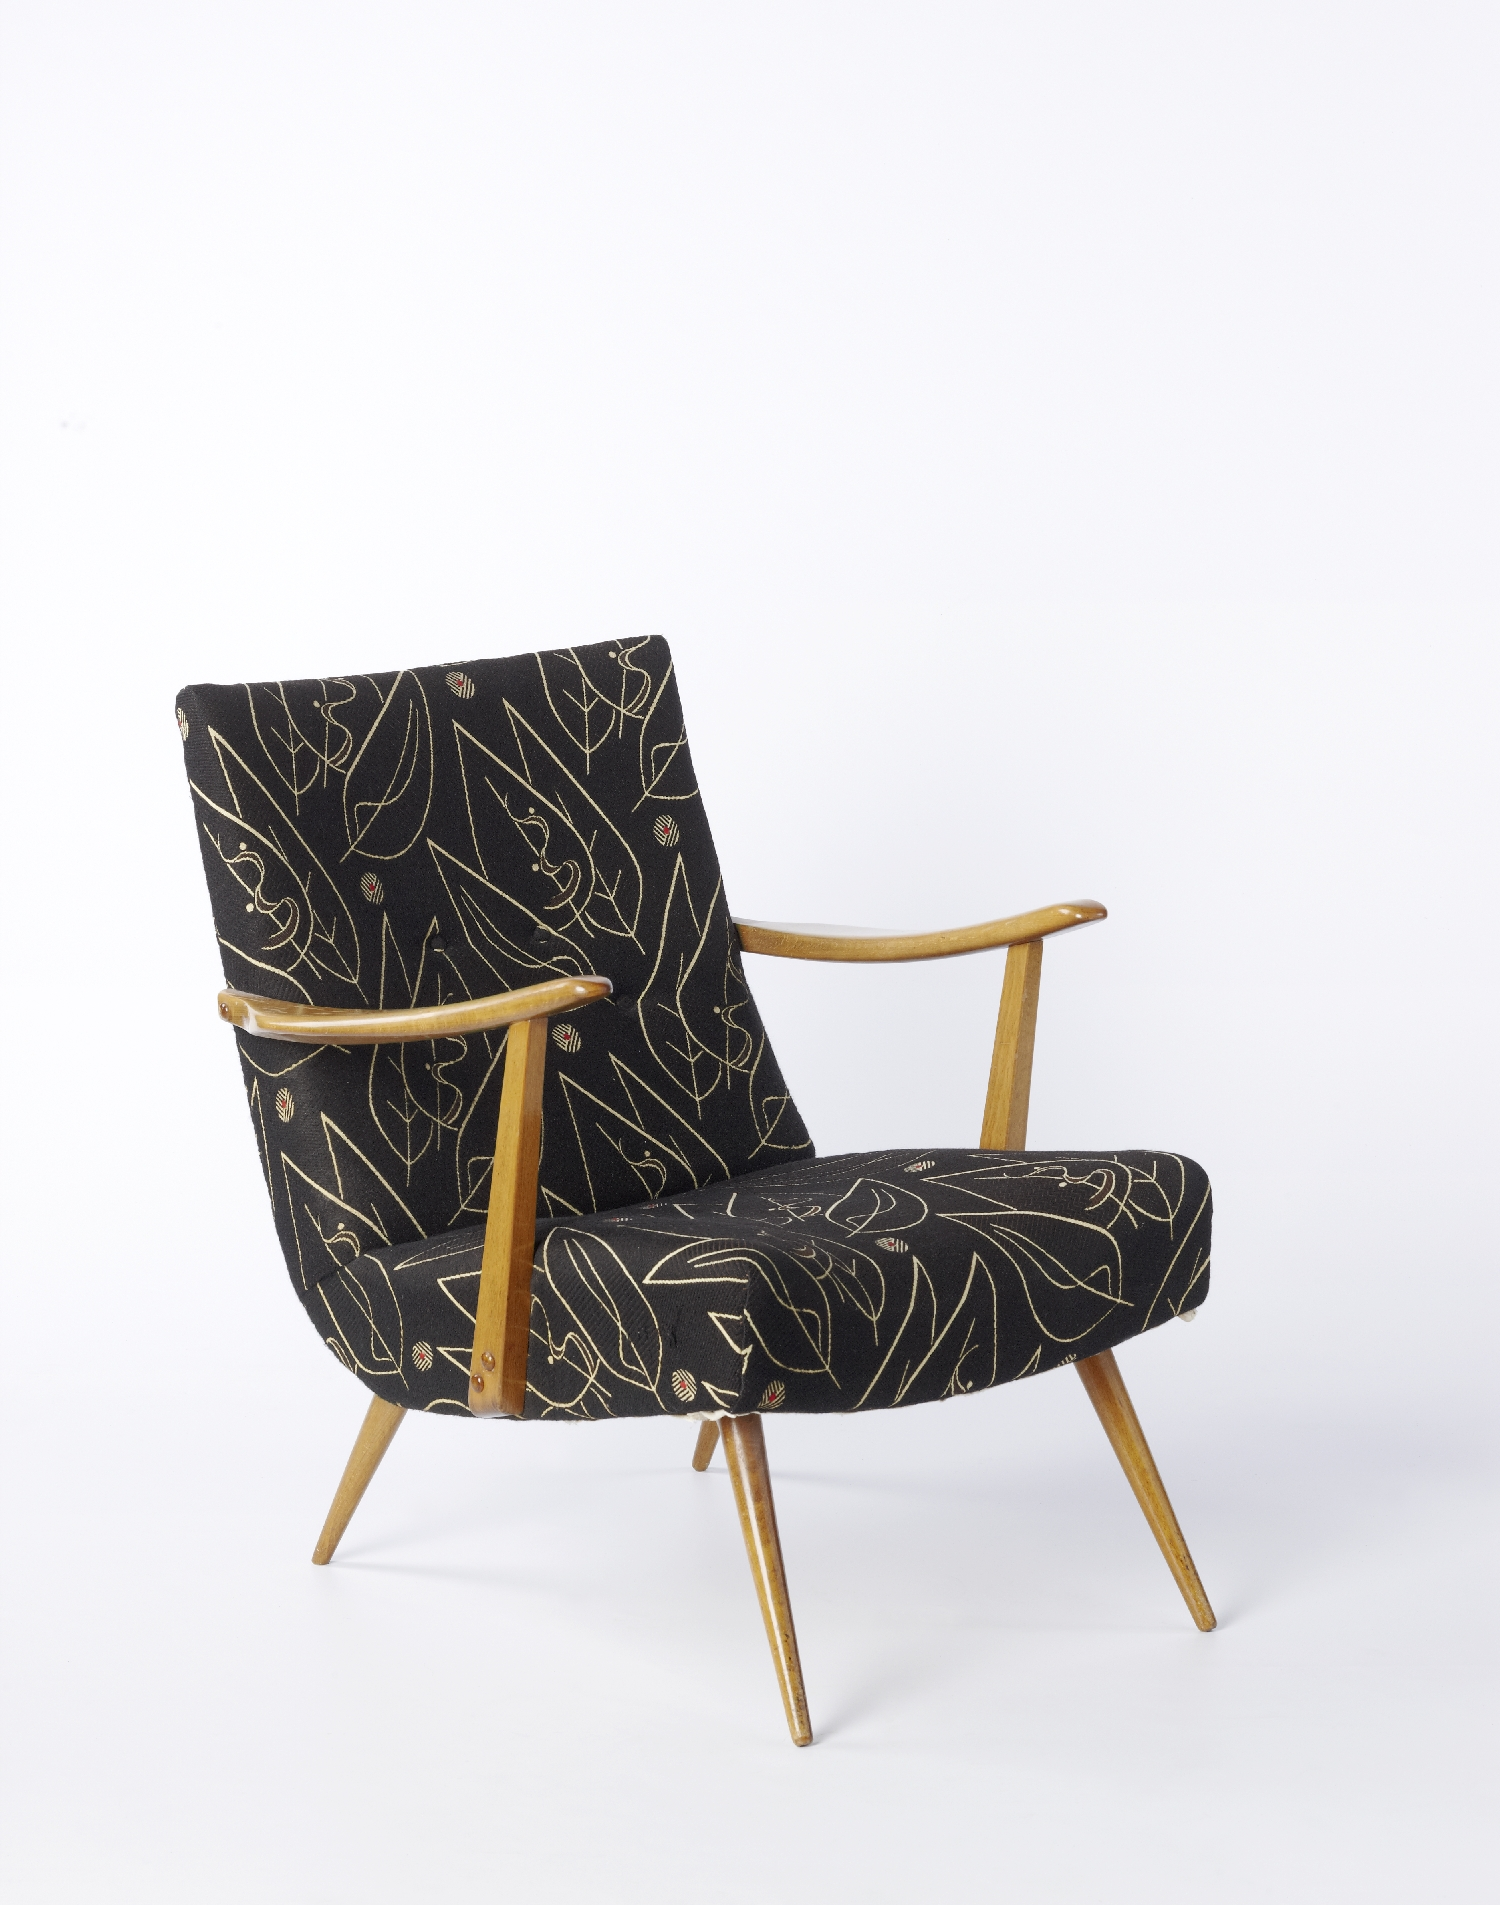 Easy chair, 1950s, wood, fabric, inv. no. 2117-2011